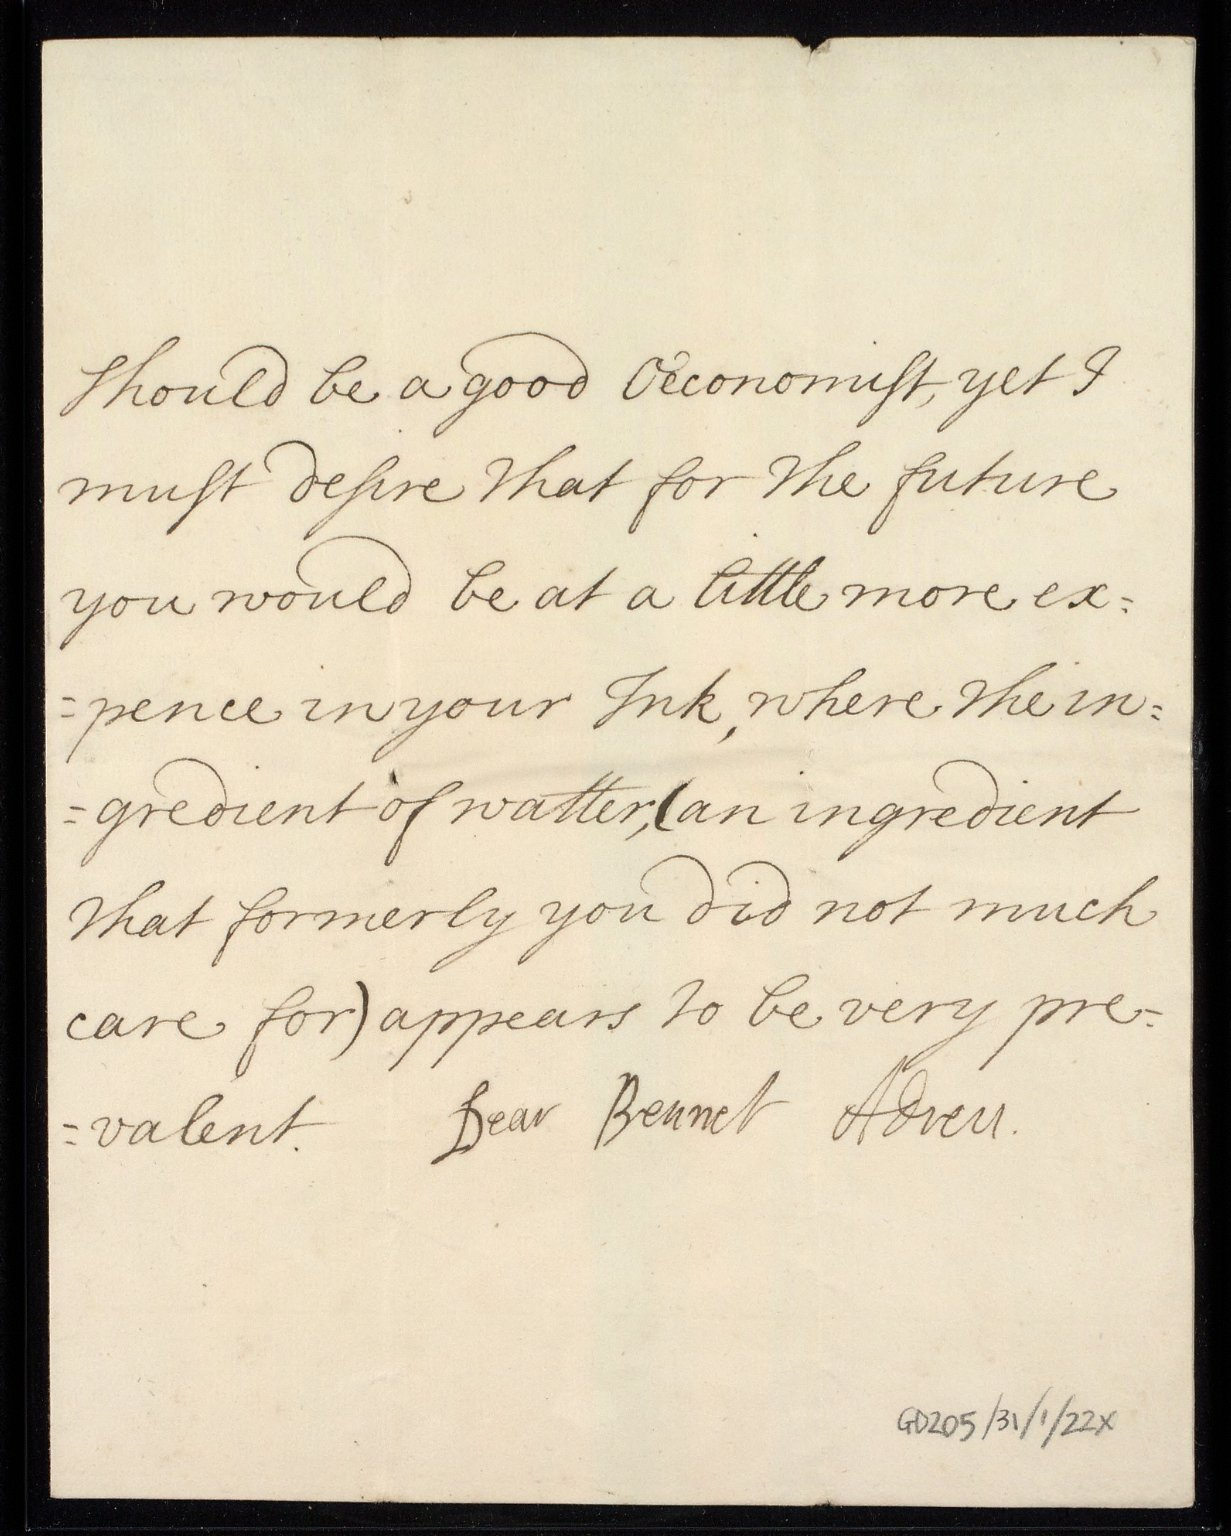 [Letter from the Countess of Roxburghe, London, to Sir William Bennet of Grubbet concerning the Broxmouth garden and its earlier survey by John Adair, 3 September 1719] [3 of 3]